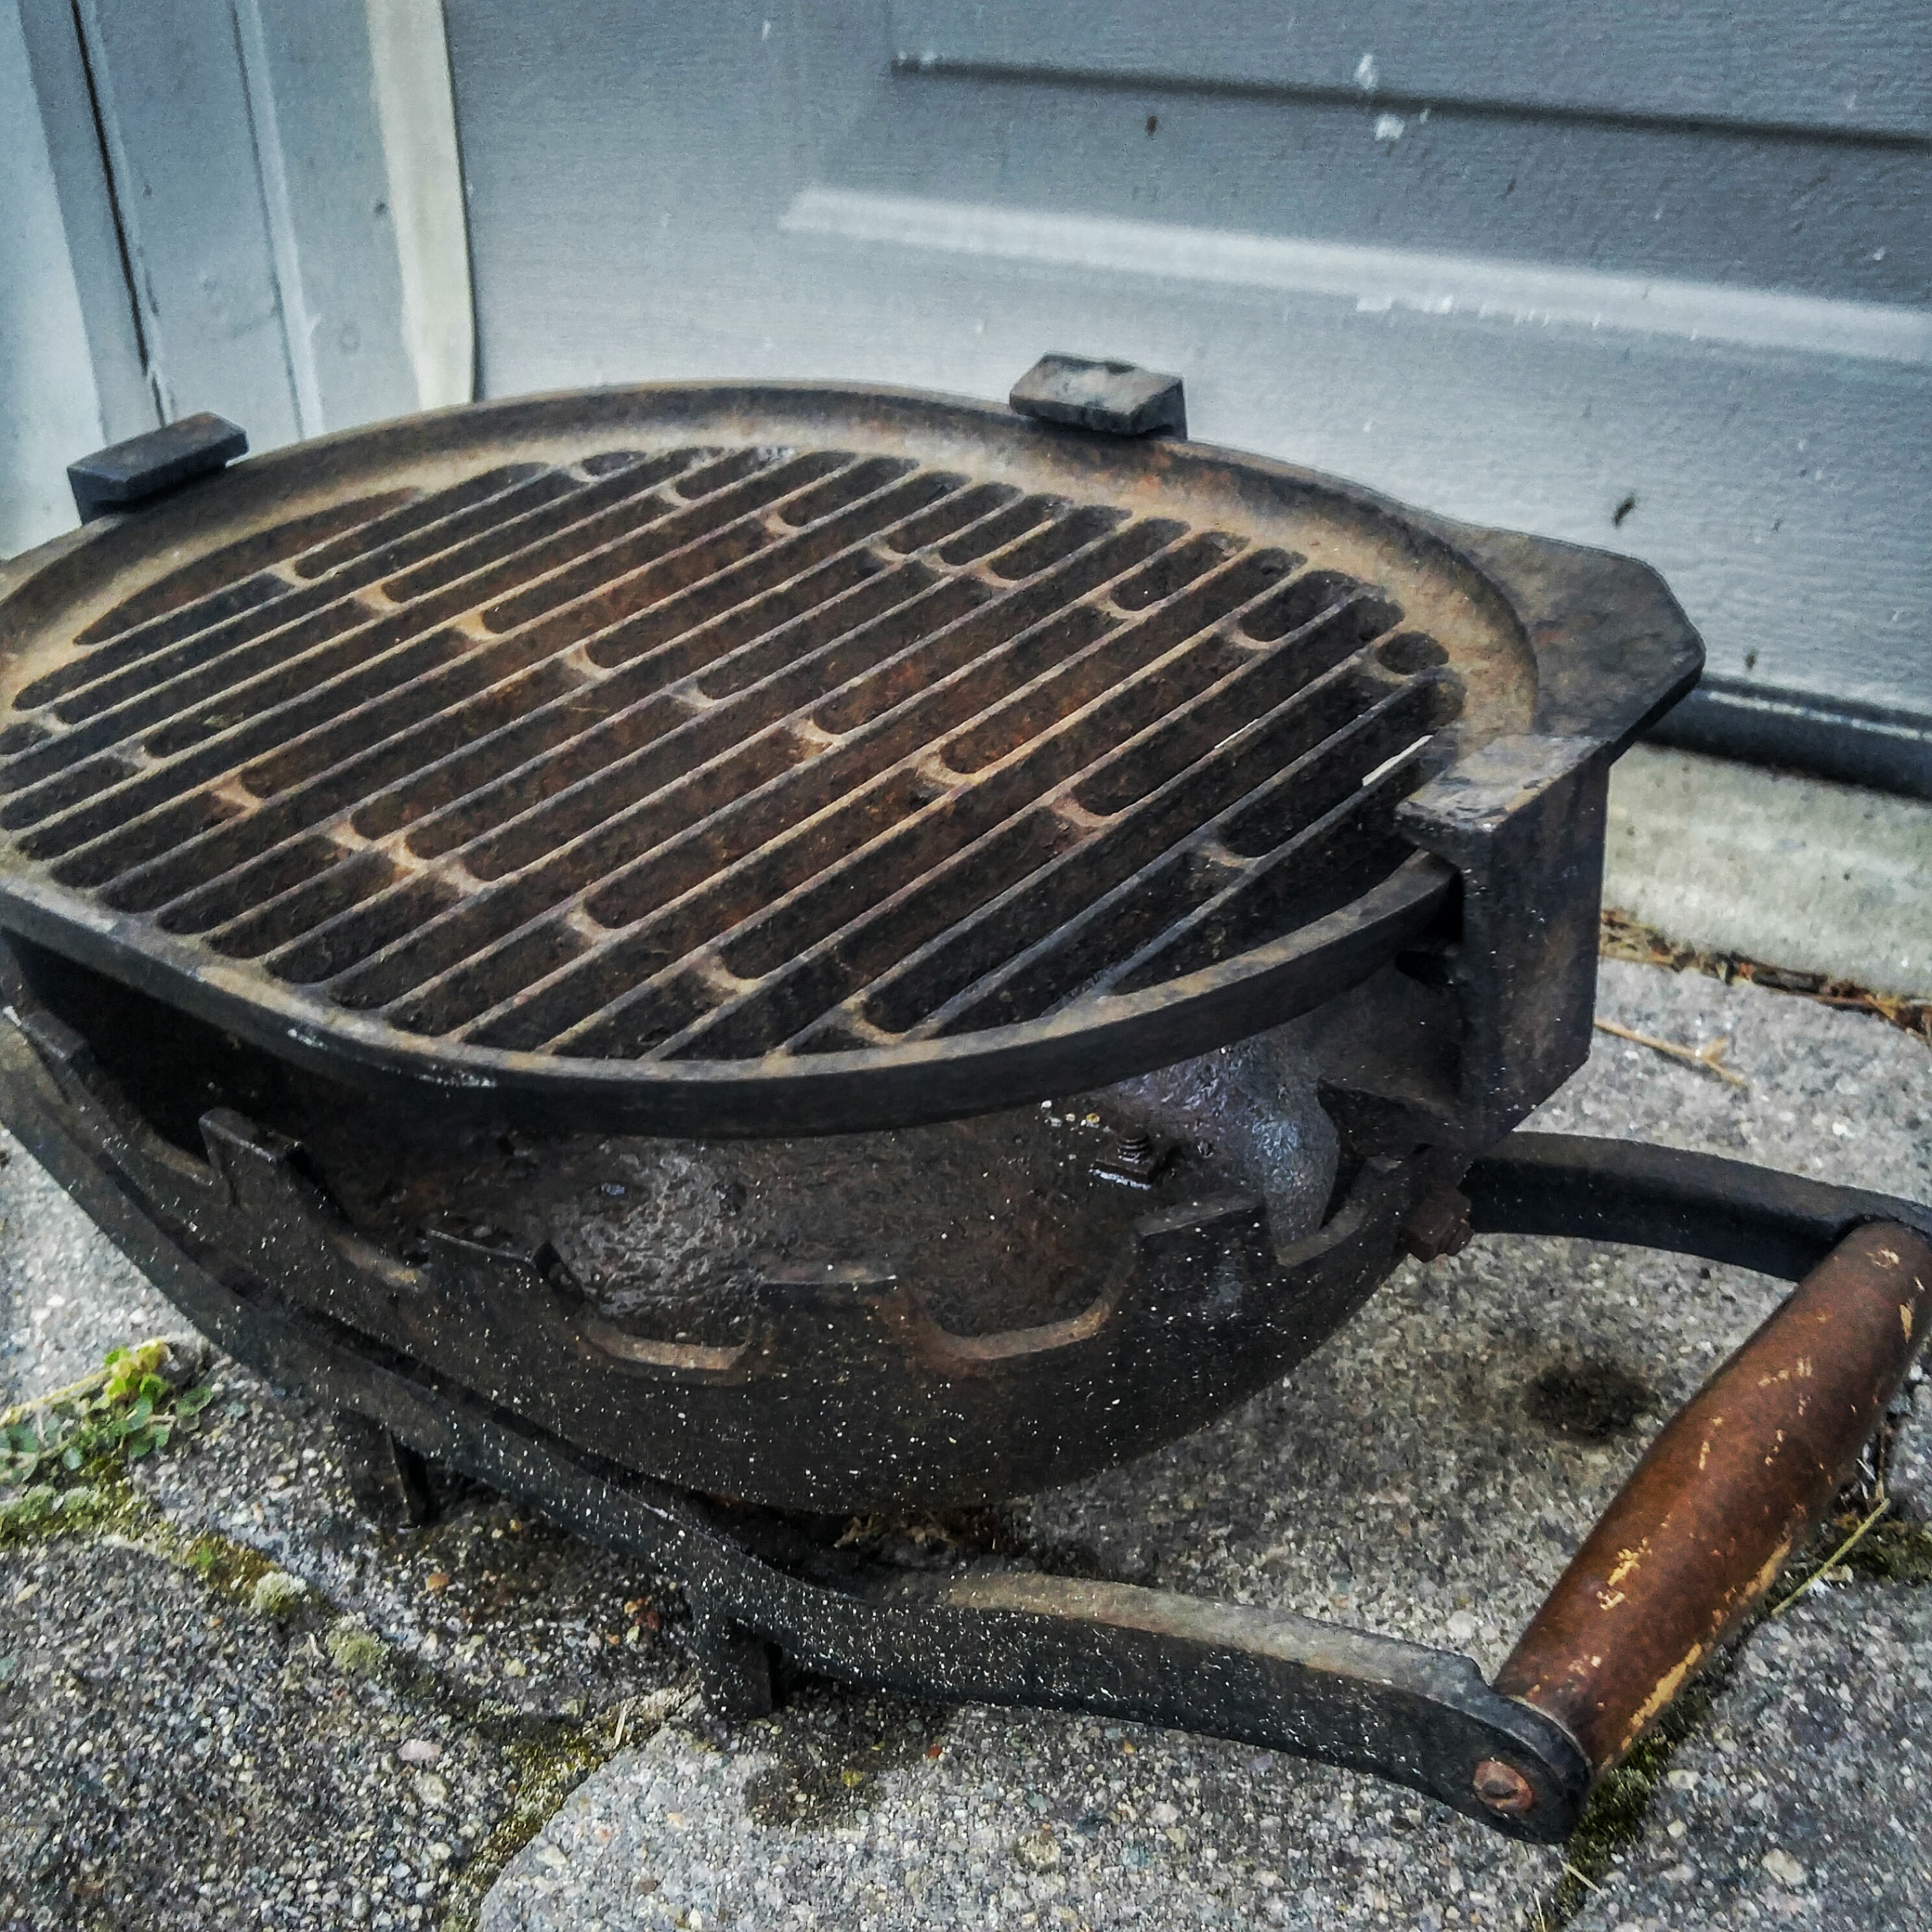 Fetching Check Out This Hibachi Iron Hibachi That Bror Inlaw Barry Found Norast Bbq Check Out This Hibachi Iron Hibachi That Cast Iron Hibachi Grill Review Vintage Cast Iron Hibachi Grill houzz 01 Cast Iron Hibachi Grill